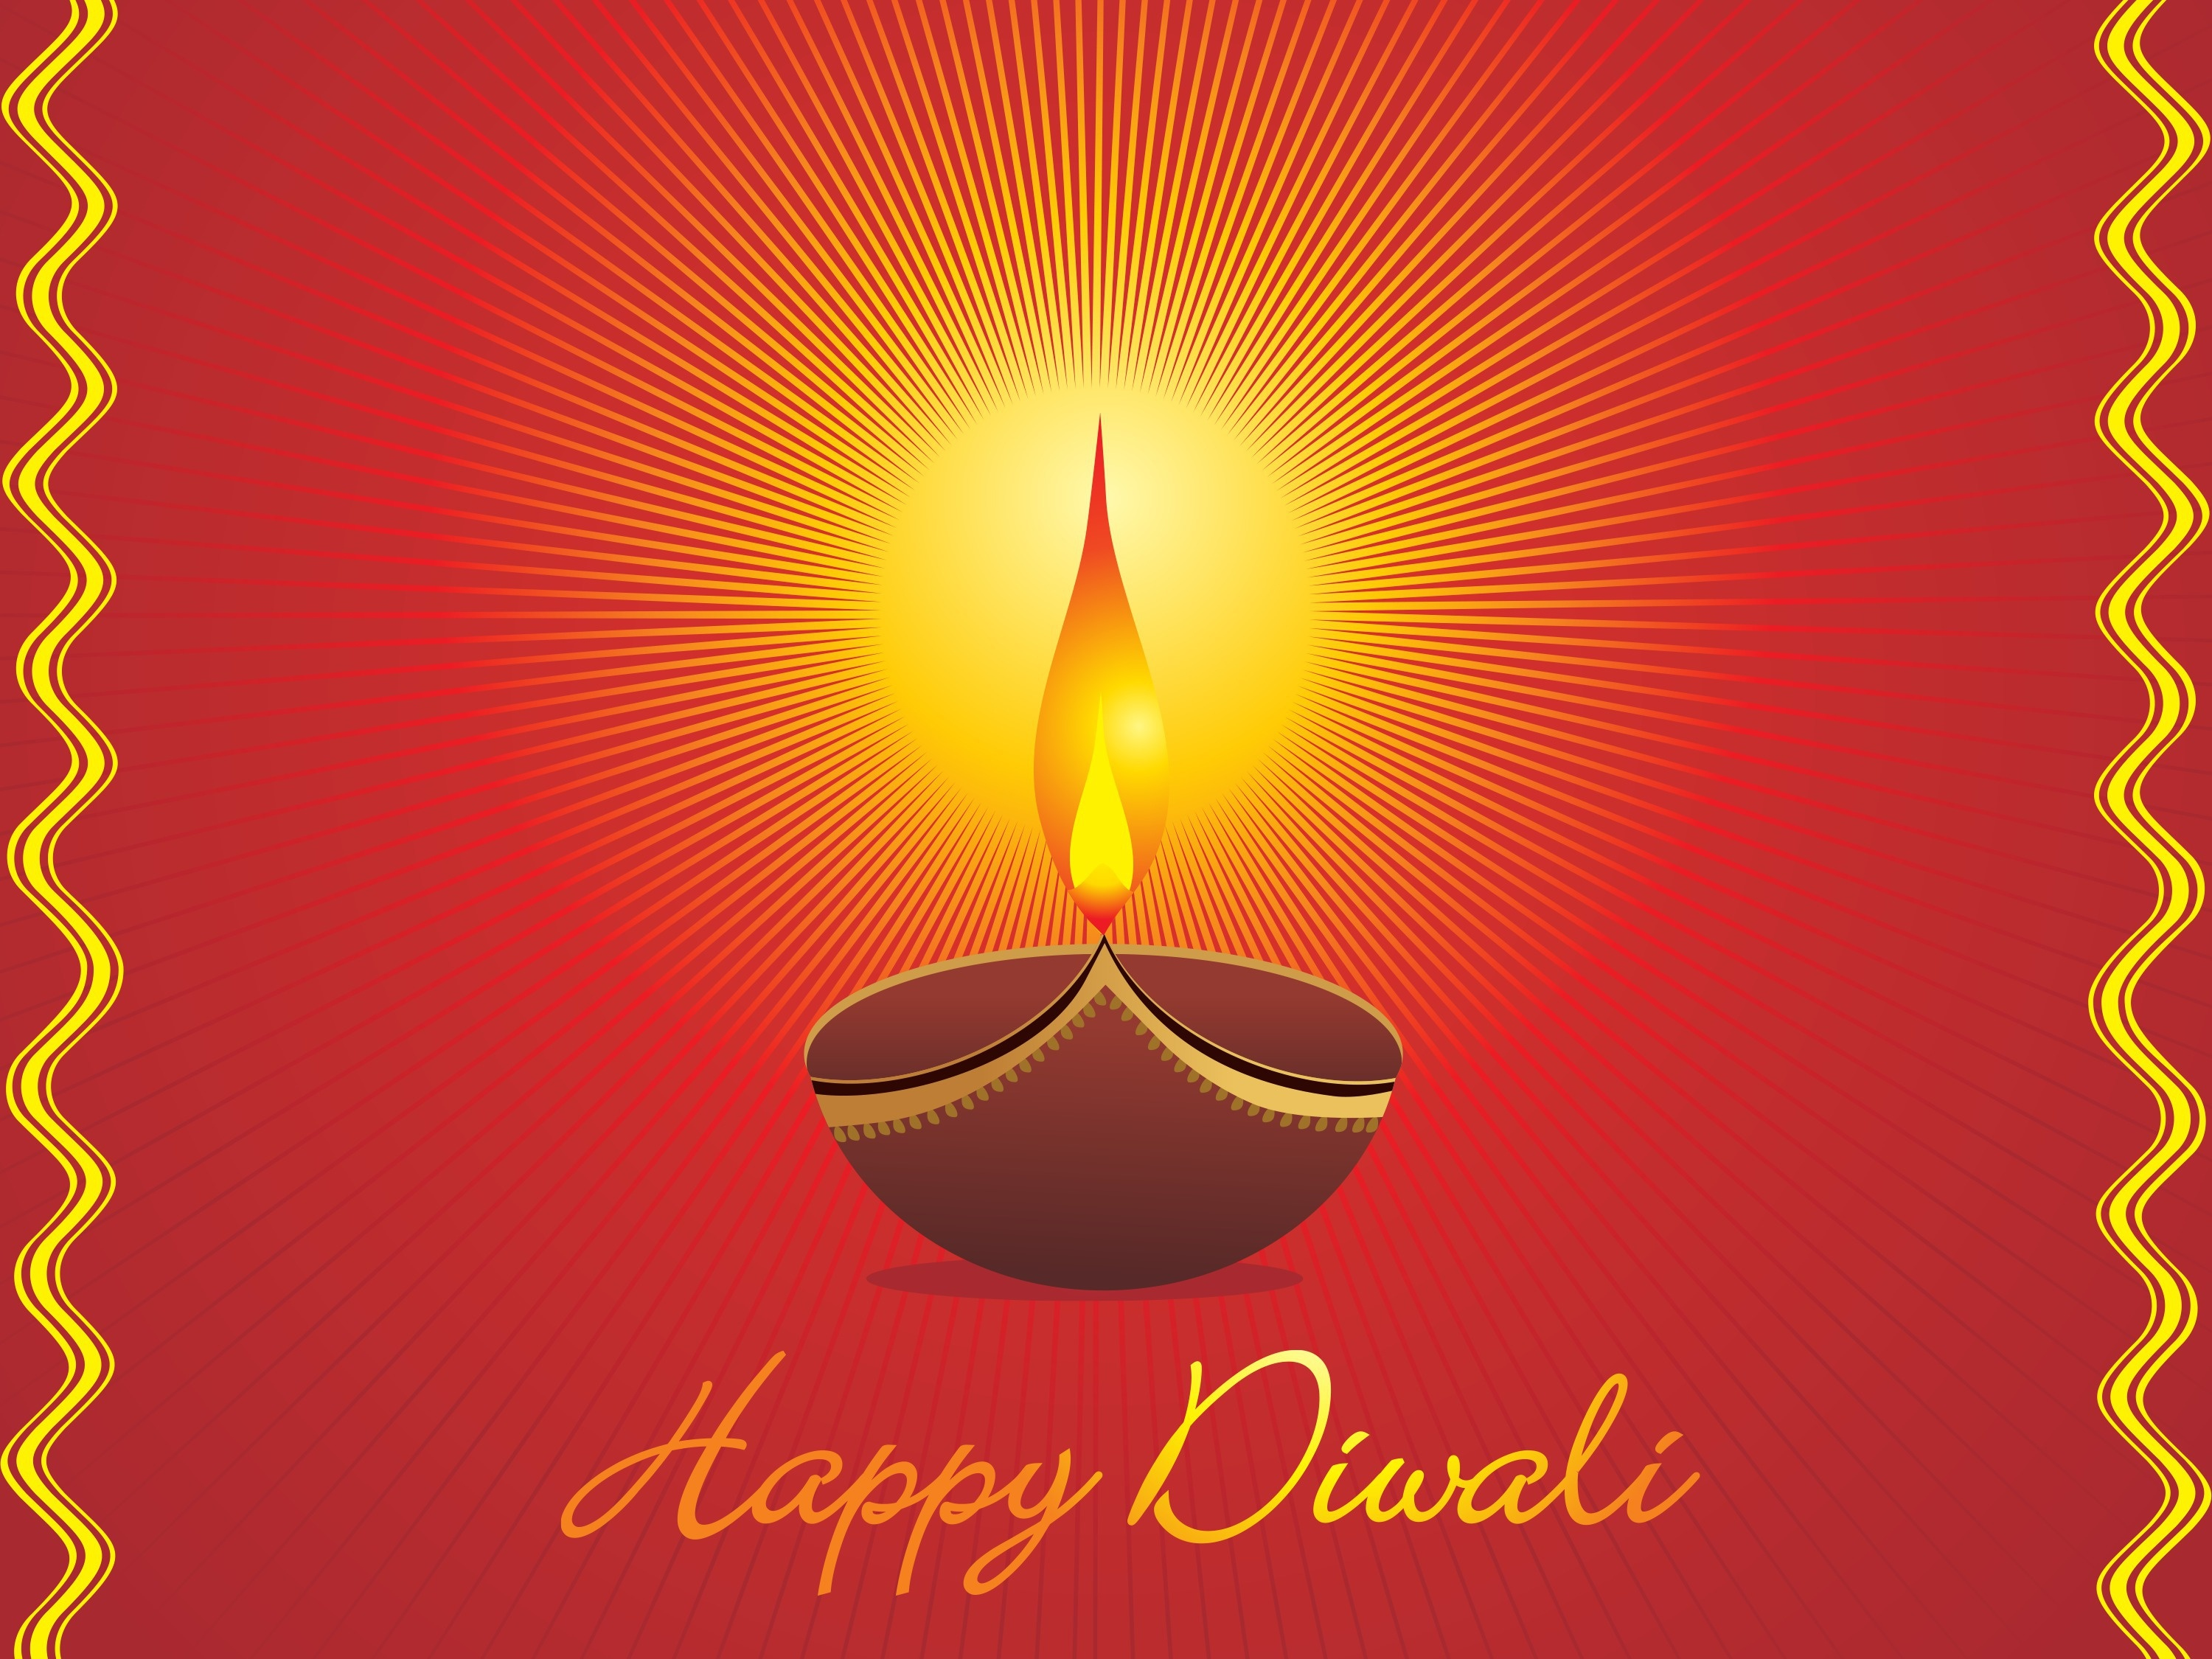 diwali-math-genie-closed.jpg